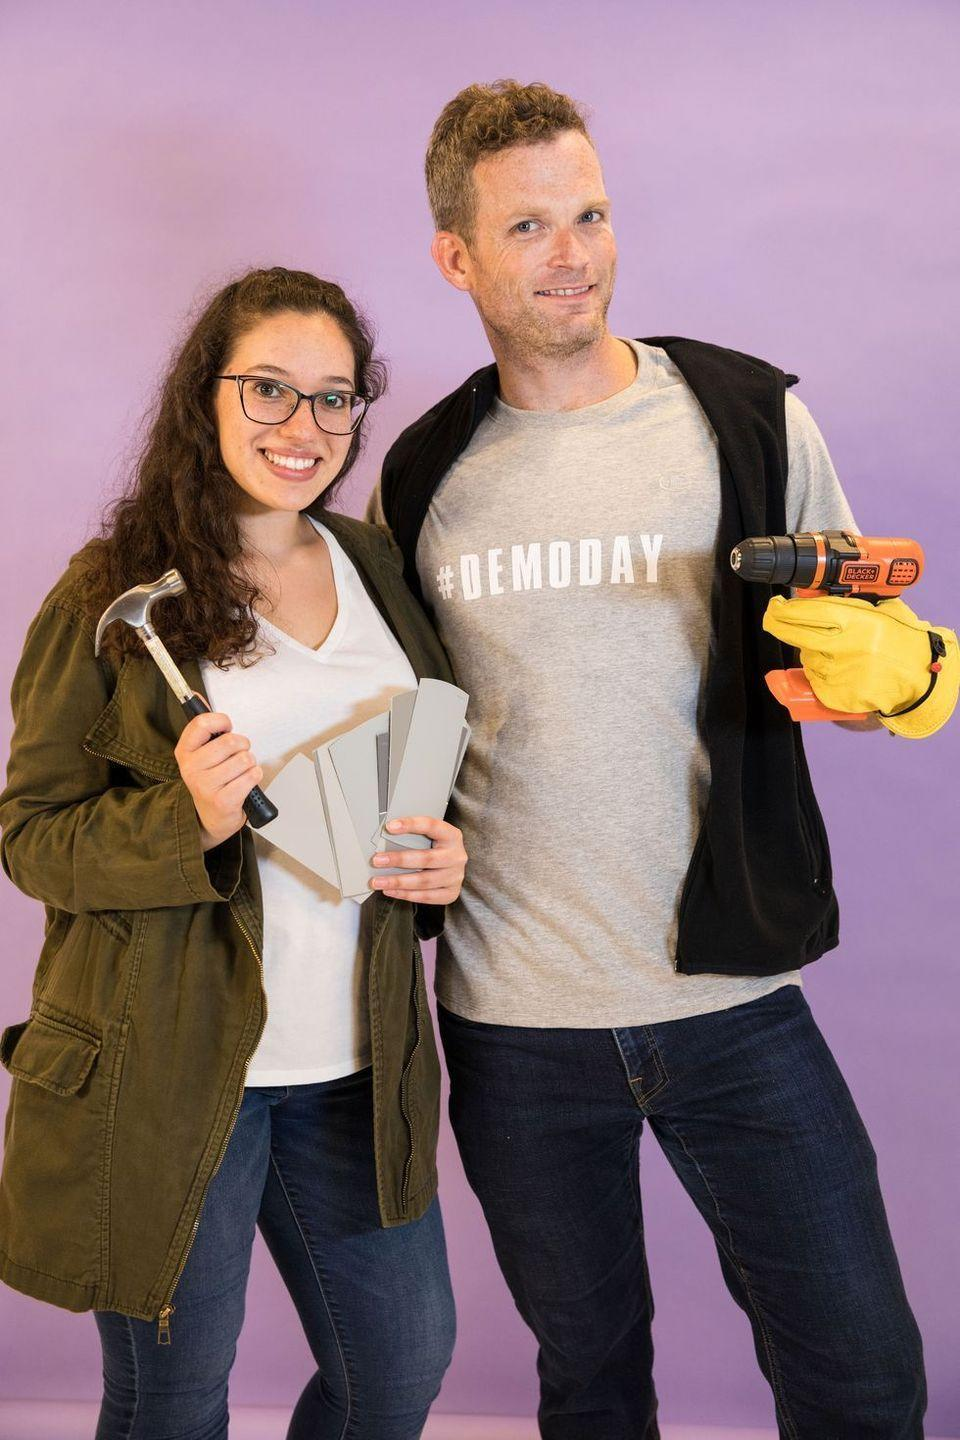 """<p>If you've got a pair of jeans, a jacket, and a toolkit, you have everything you need to transform into HGTV's <em>Fixer Upper</em> duo. Fair warning: Your friends may task you with some DIY projects at the party. </p><p><a class=""""link rapid-noclick-resp"""" href=""""https://www.amazon.com/Demo-Day-Demoday-House-Flipper-T-Shirt/dp/B07PJC2DCT?tag=syn-yahoo-20&ascsubtag=%5Bartid%7C10055.g.29516206%5Bsrc%7Cyahoo-us"""" rel=""""nofollow noopener"""" target=""""_blank"""" data-ylk=""""slk:SHOP #DEMODAY SHIRT"""">SHOP #DEMODAY SHIRT</a></p><p><a class=""""link rapid-noclick-resp"""" href=""""https://www.amazon.com/FASHION-BOOMY-Womens-Military-Anorak/dp/B01KPFKA0E/?tag=syn-yahoo-20&ascsubtag=%5Bartid%7C10055.g.29516206%5Bsrc%7Cyahoo-us"""" rel=""""nofollow noopener"""" target=""""_blank"""" data-ylk=""""slk:SHOP JACKET"""">SHOP JACKET</a></p><p><strong>RELATED:</strong> <a href=""""https://www.goodhousekeeping.com/holidays/halloween-ideas/a29212306/pop-culture-halloween-costumes/"""" rel=""""nofollow noopener"""" target=""""_blank"""" data-ylk=""""slk:The Best Pop Culture Costumes of 2020"""" class=""""link rapid-noclick-resp"""">The Best Pop Culture Costumes of 2020</a></p>"""